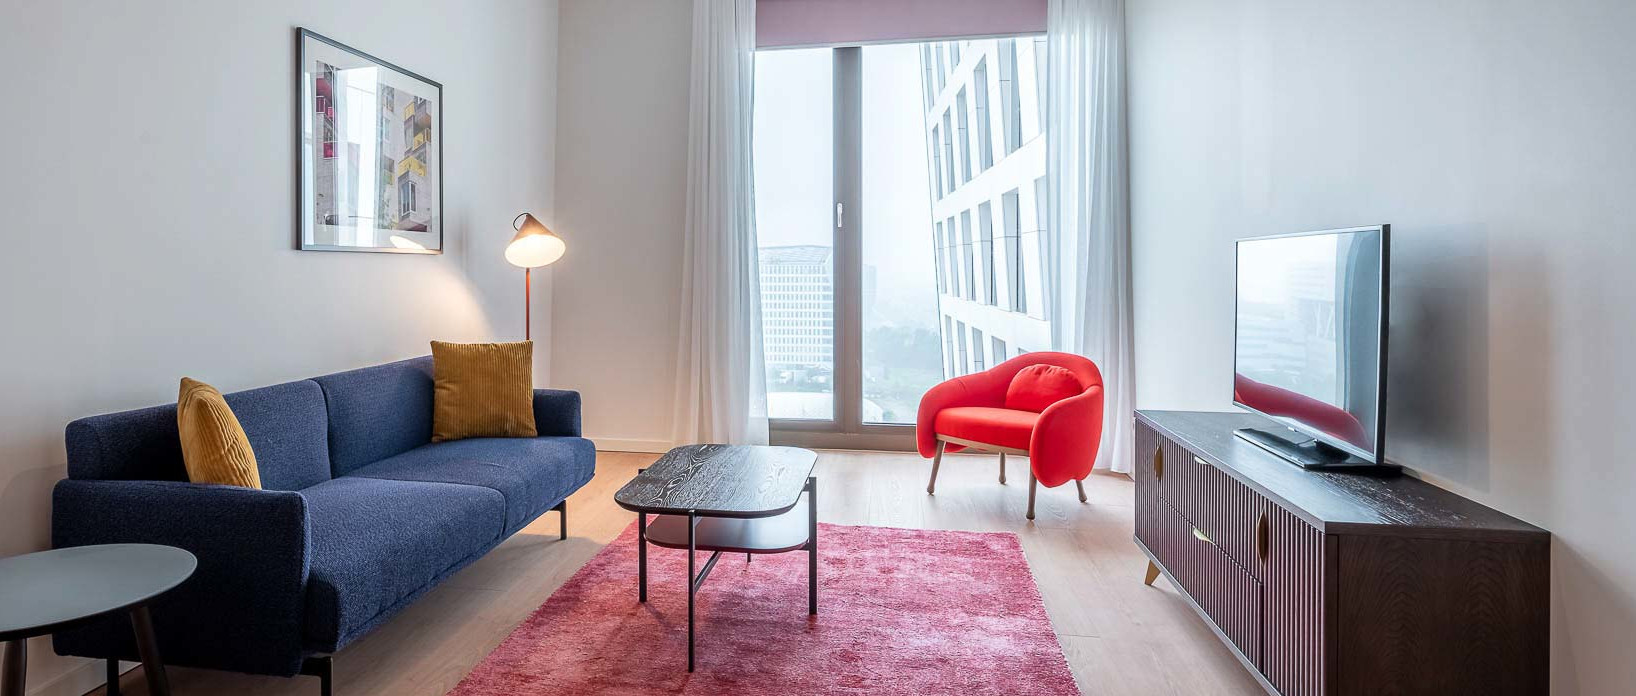 Lounge area in one the PREMIER SUITES apartments in Amsterdam